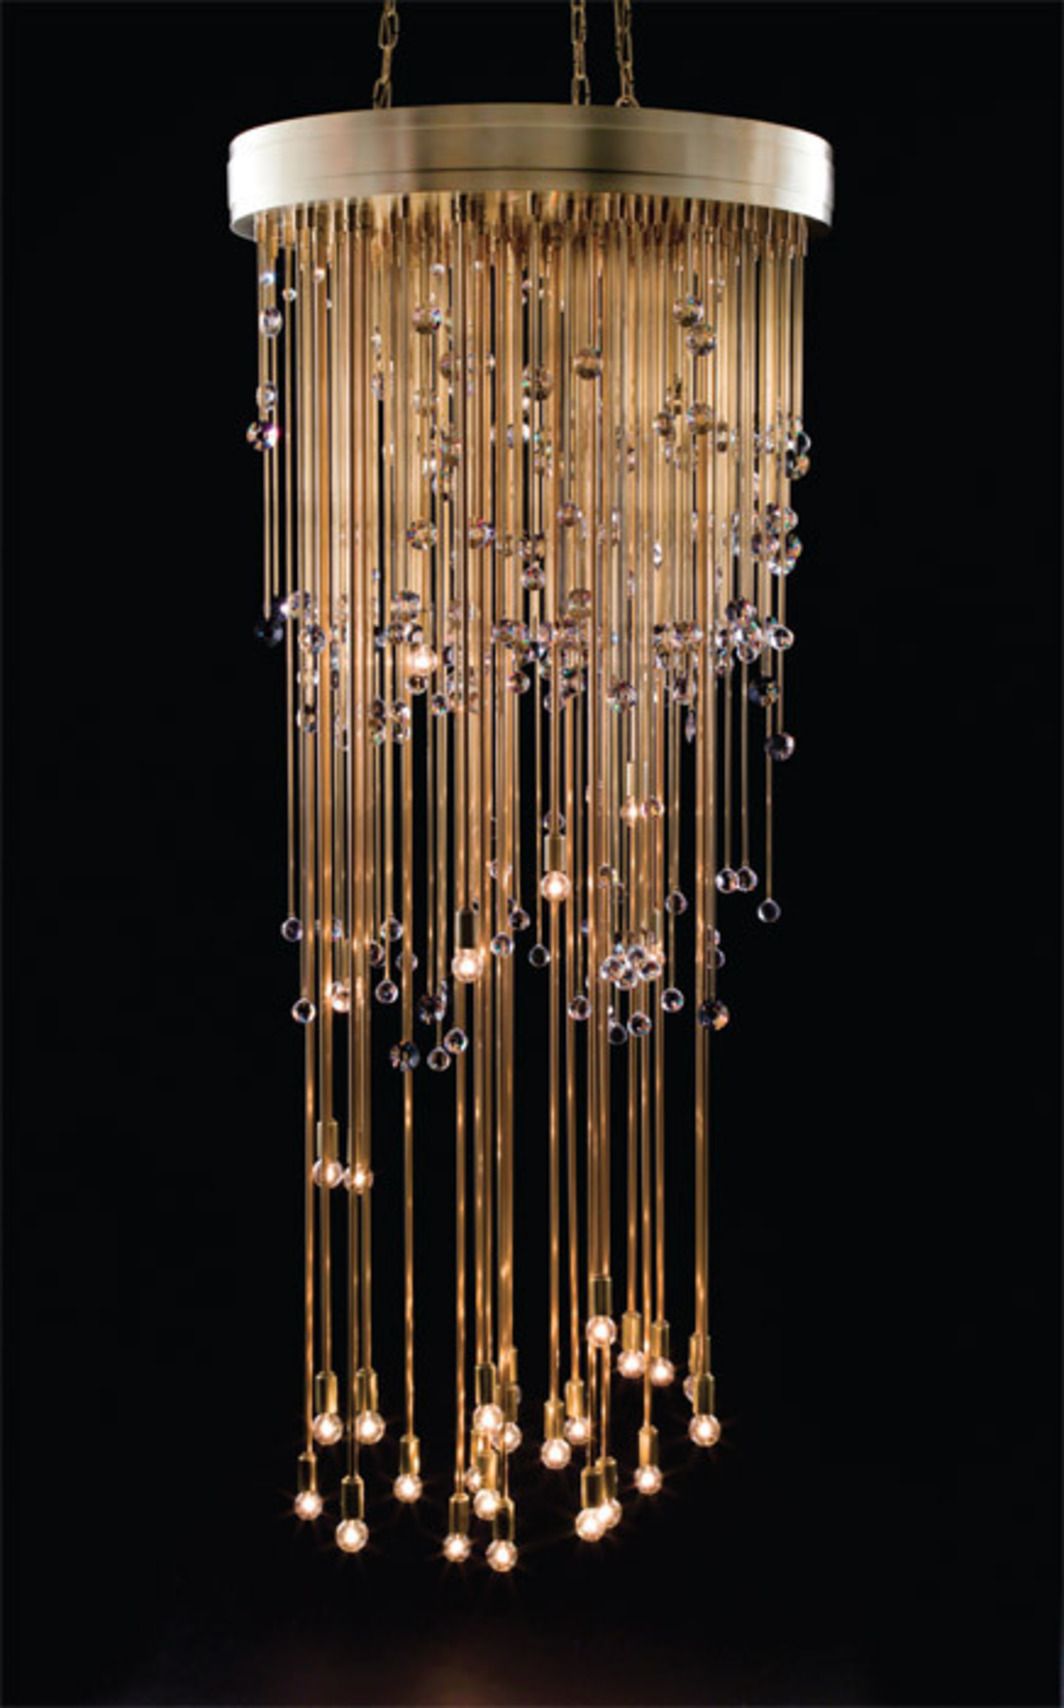 "Josiah McElheny, Study for The Center Is Everywhere (detail), 2012, cut lead crystal, electric lighting, hand-bound book; chandelier 32 x 84 x 32"", book 7 x 10""."